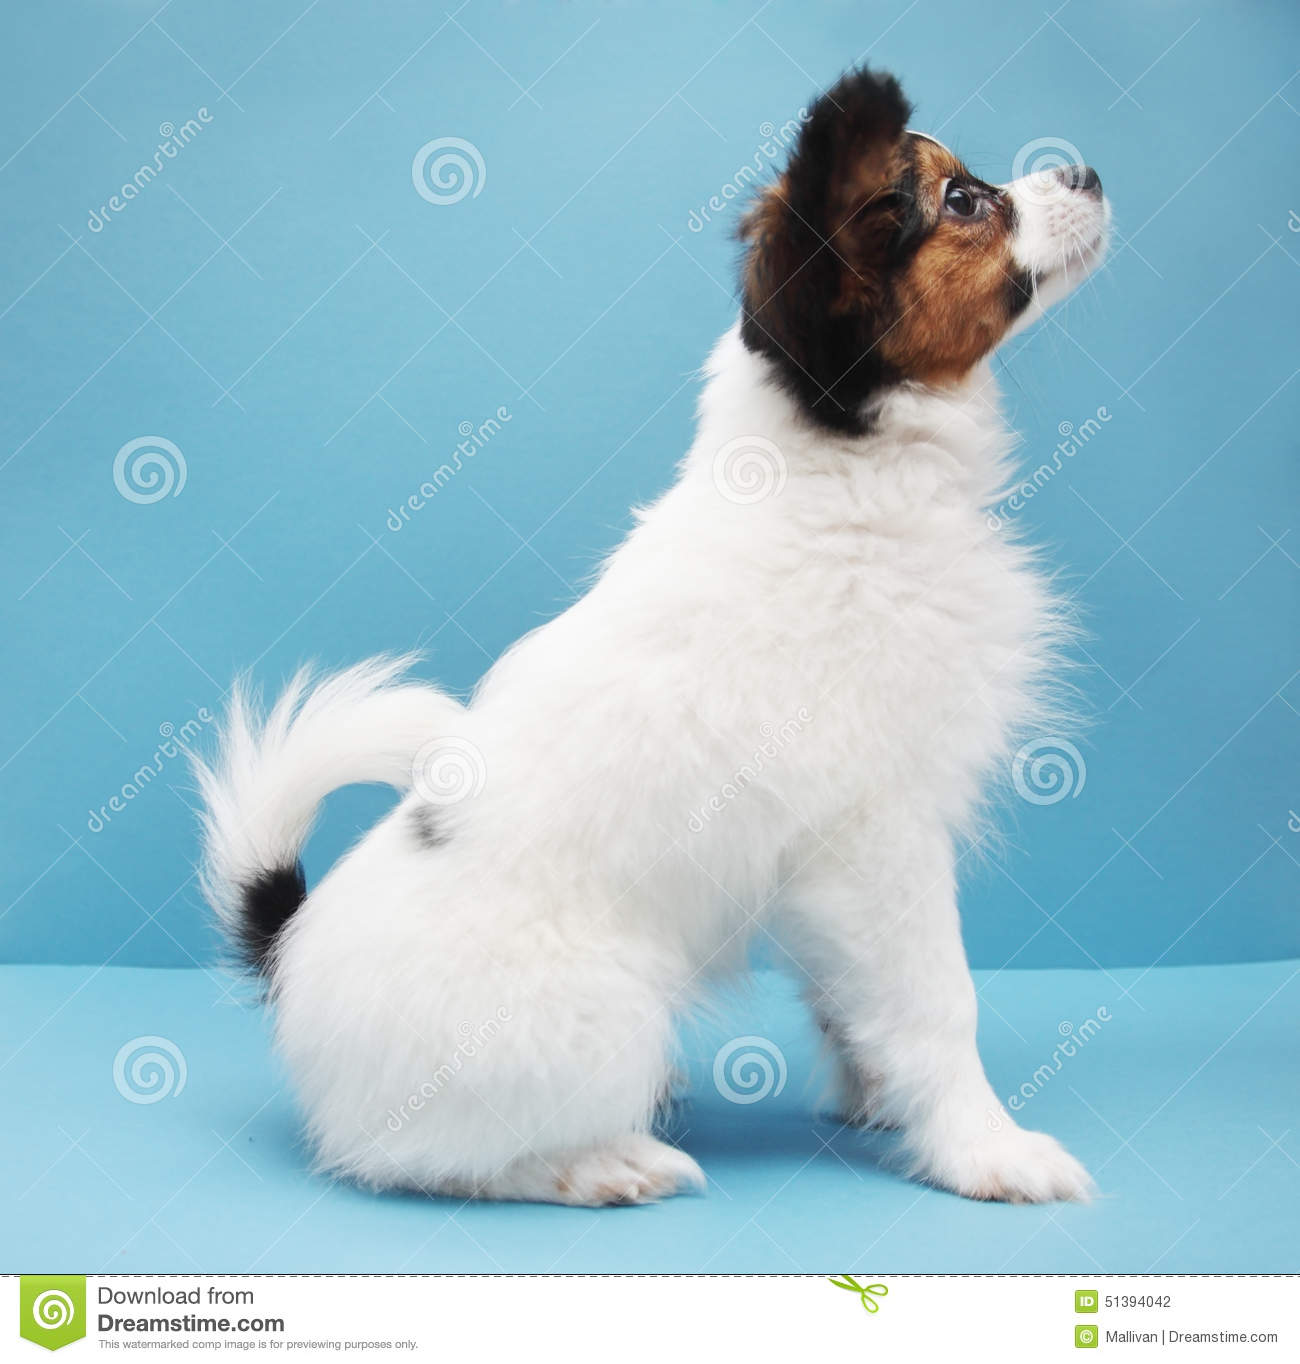 Dog Breed Papillon On A Blue Background Stock Photo Image Of Hair